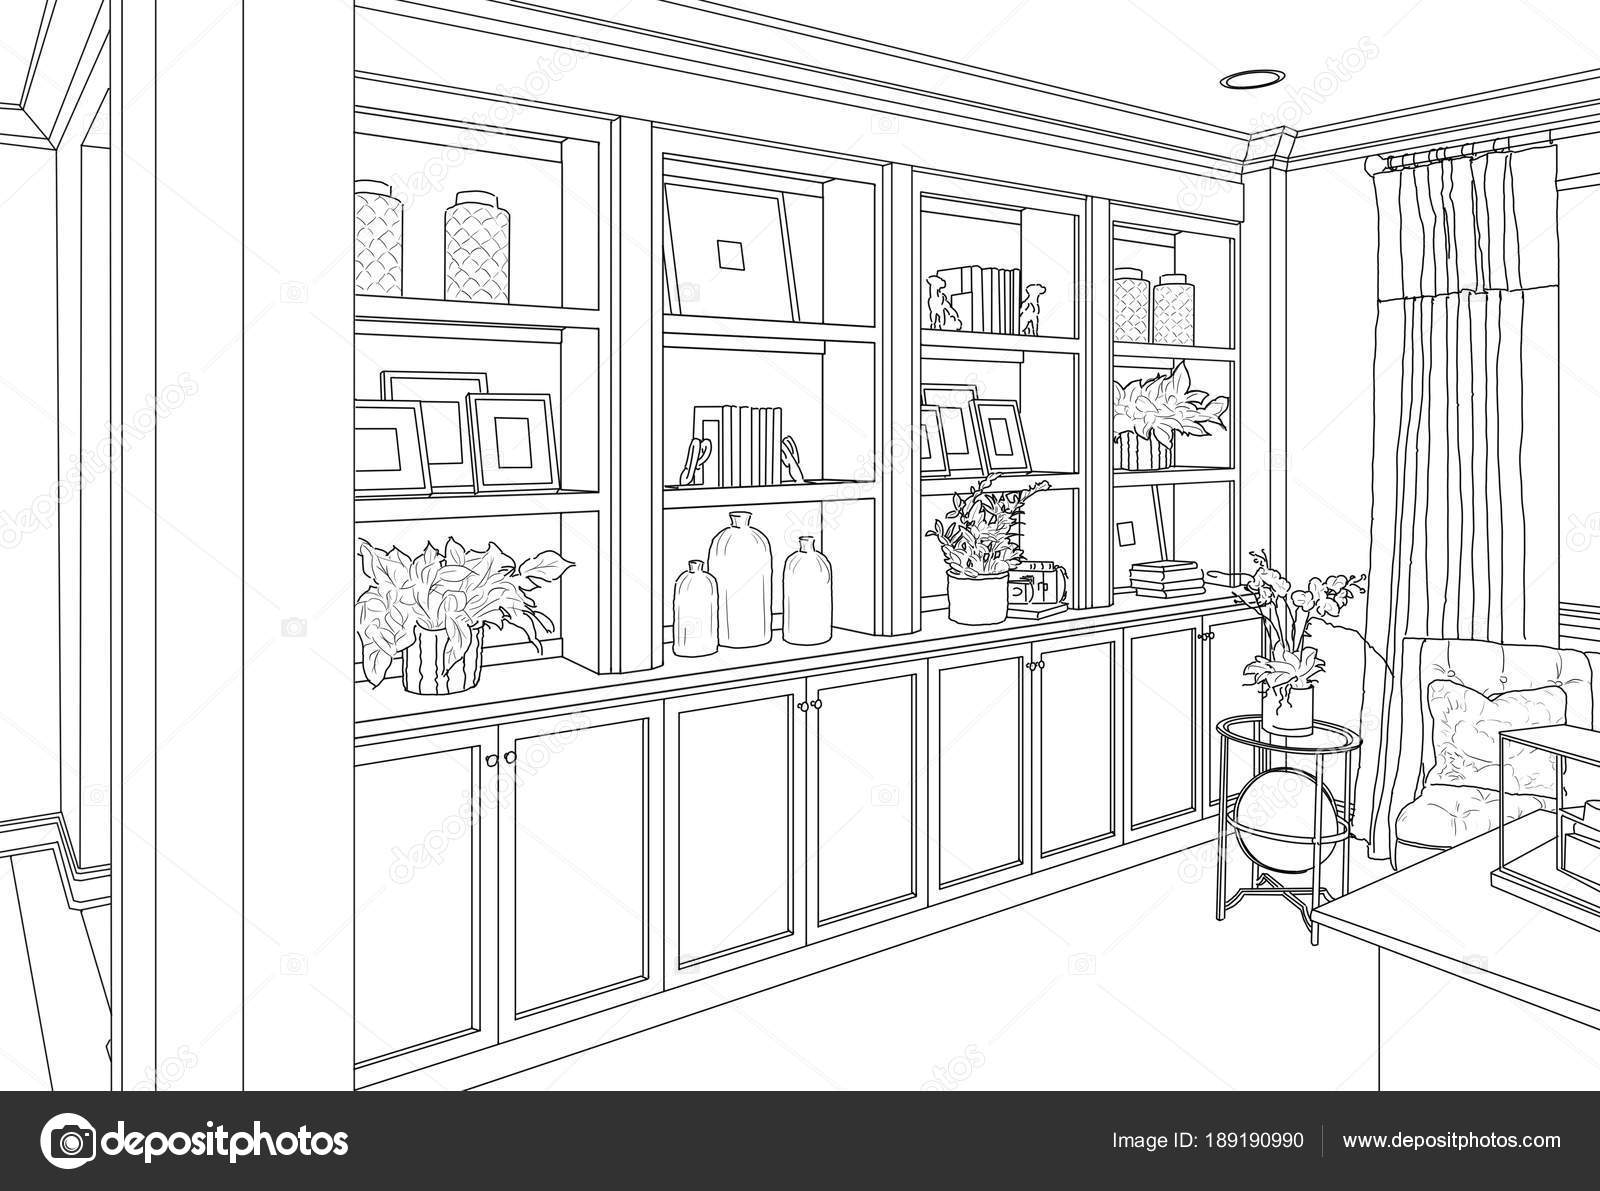 Detailed Drawing of Custom Living Room Built-in Shelves and Cabinets ...